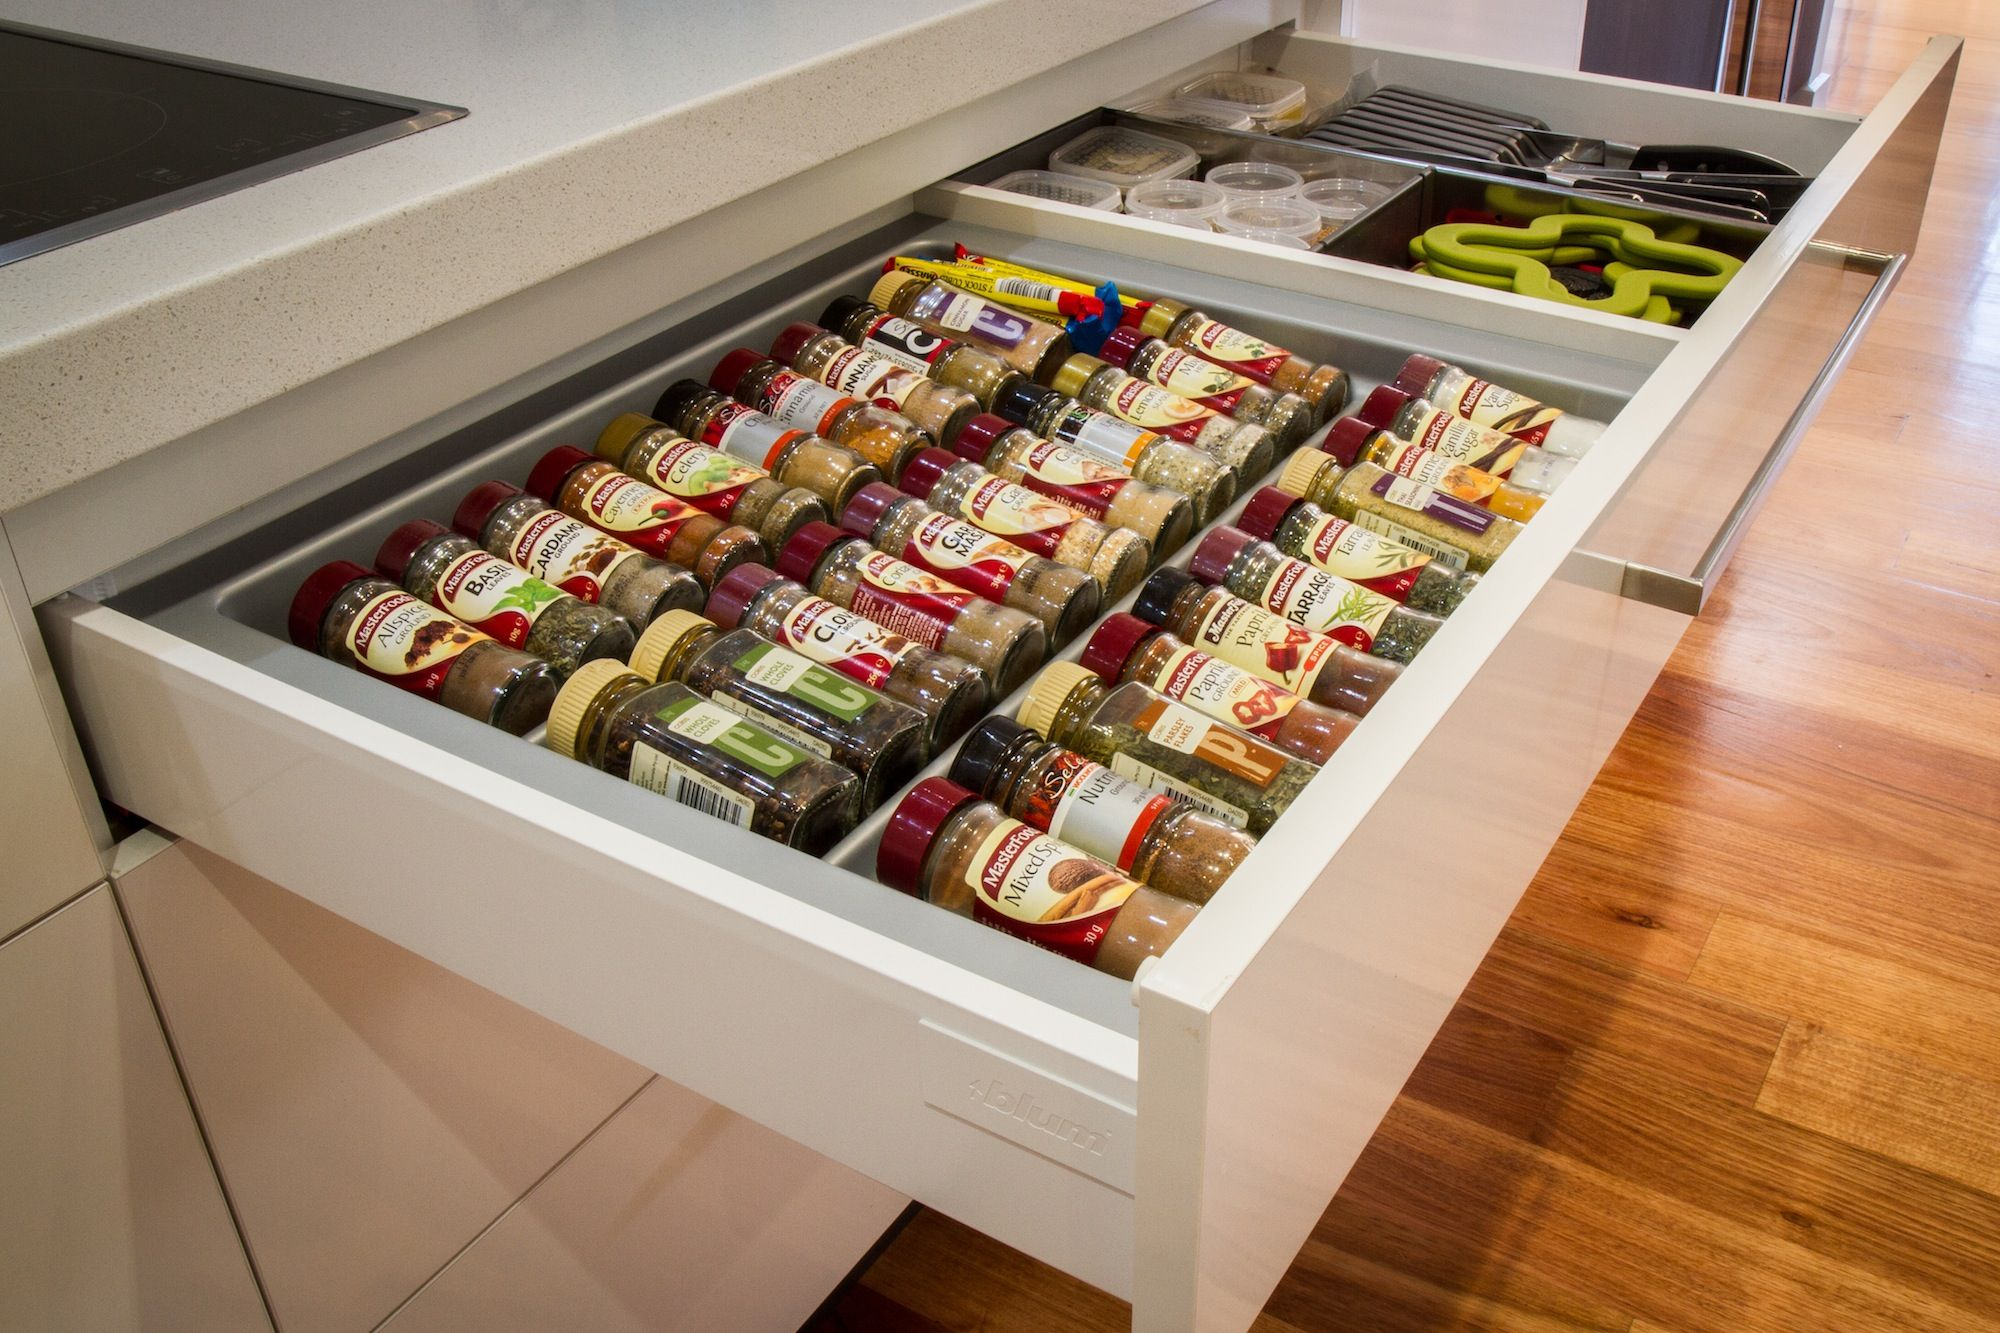 Spice drawer. Blum drawer. www.thekitchendesigncentre.com ...